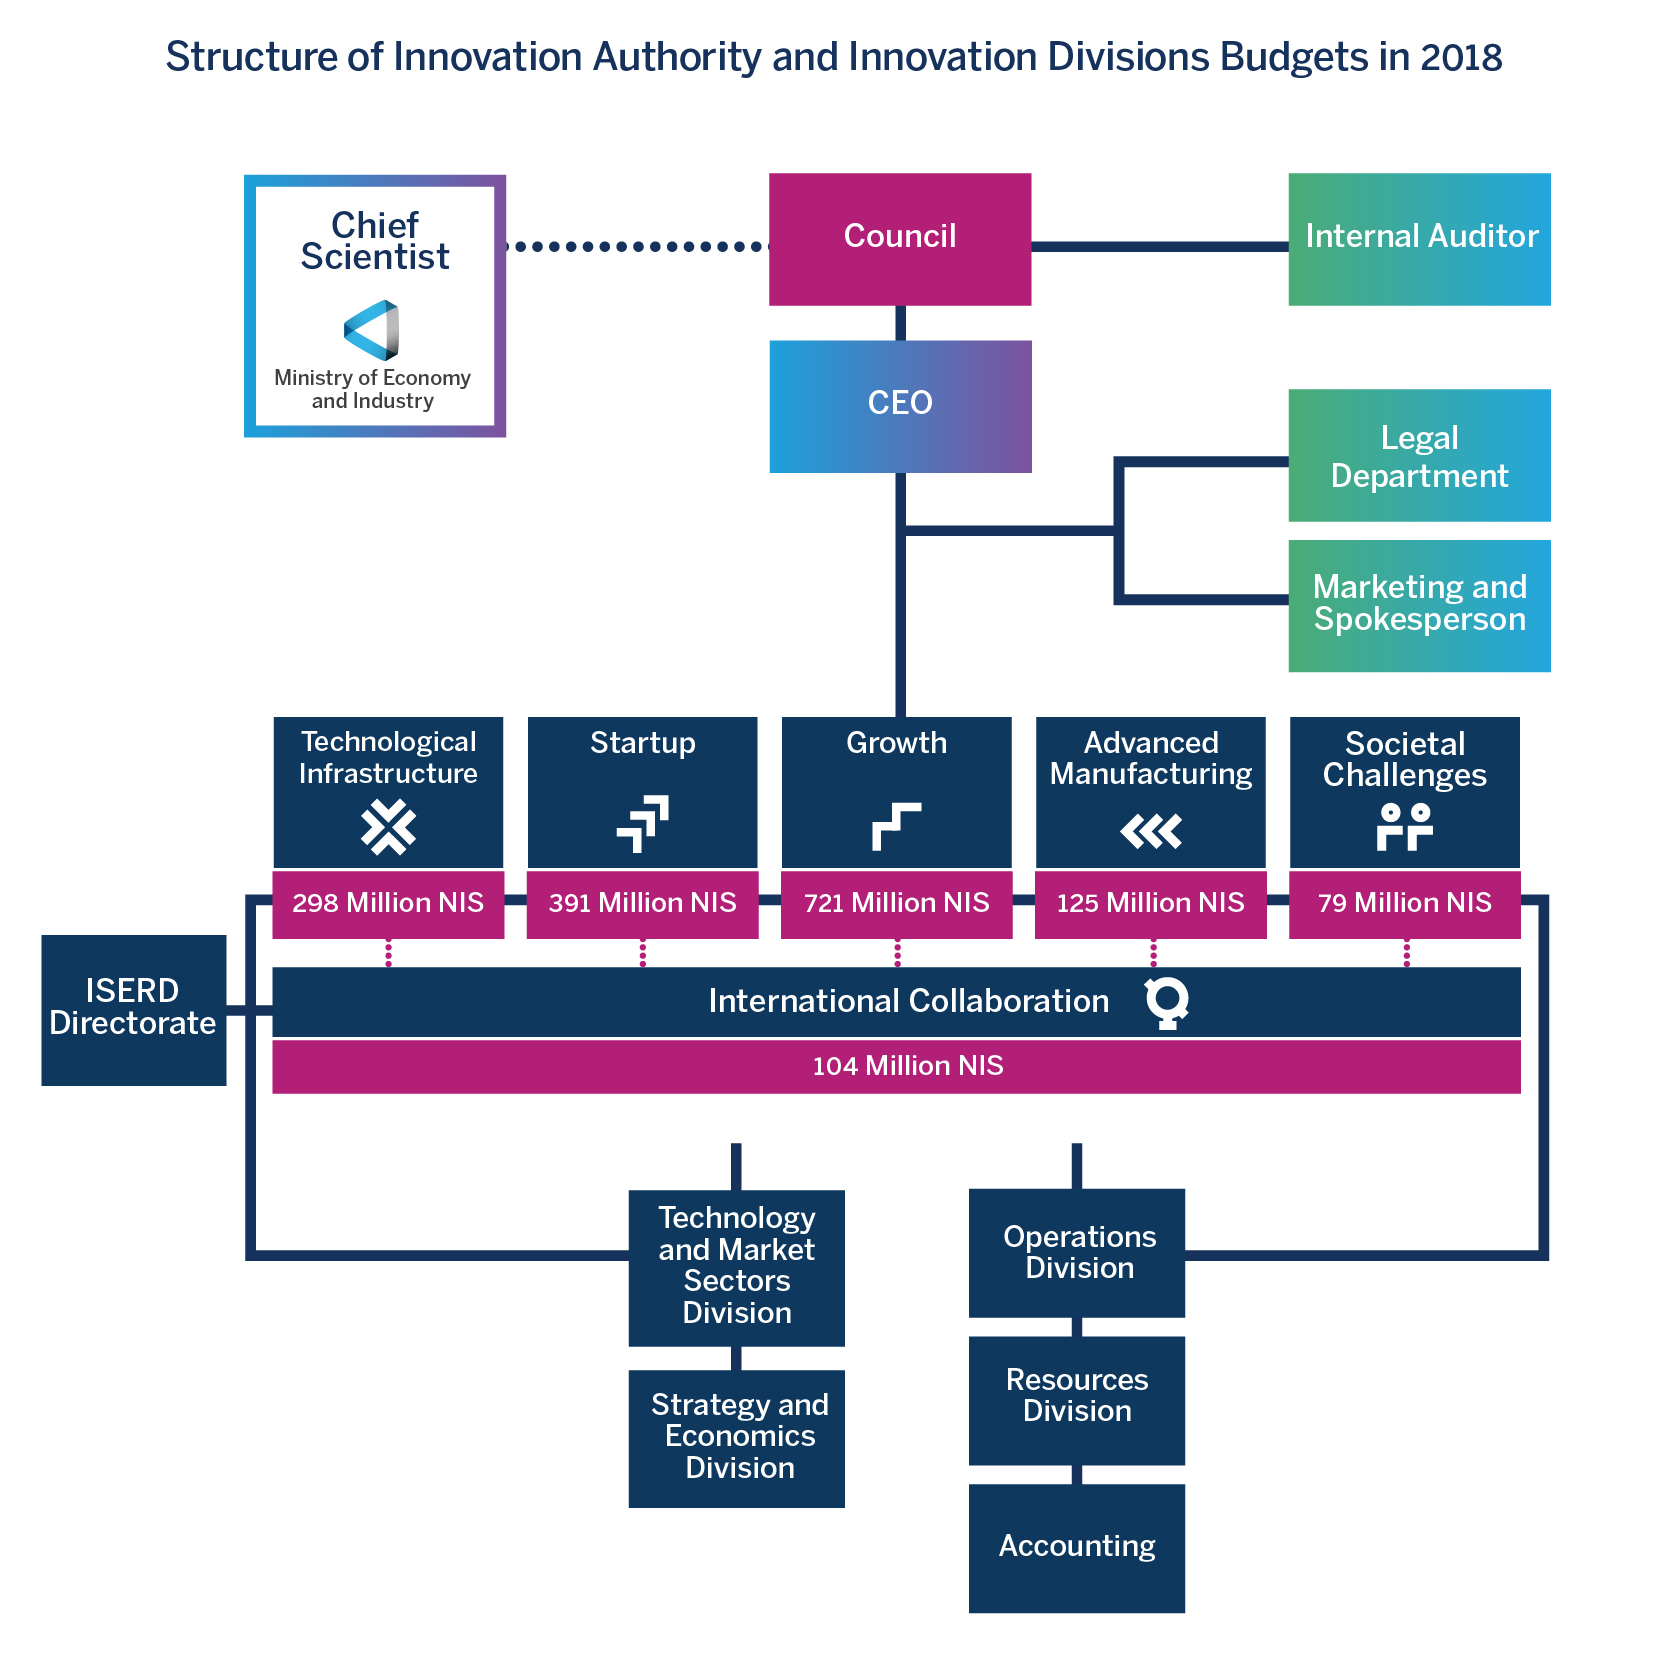 structure of innovation Authority and innovation Divisions Budgets in 2018